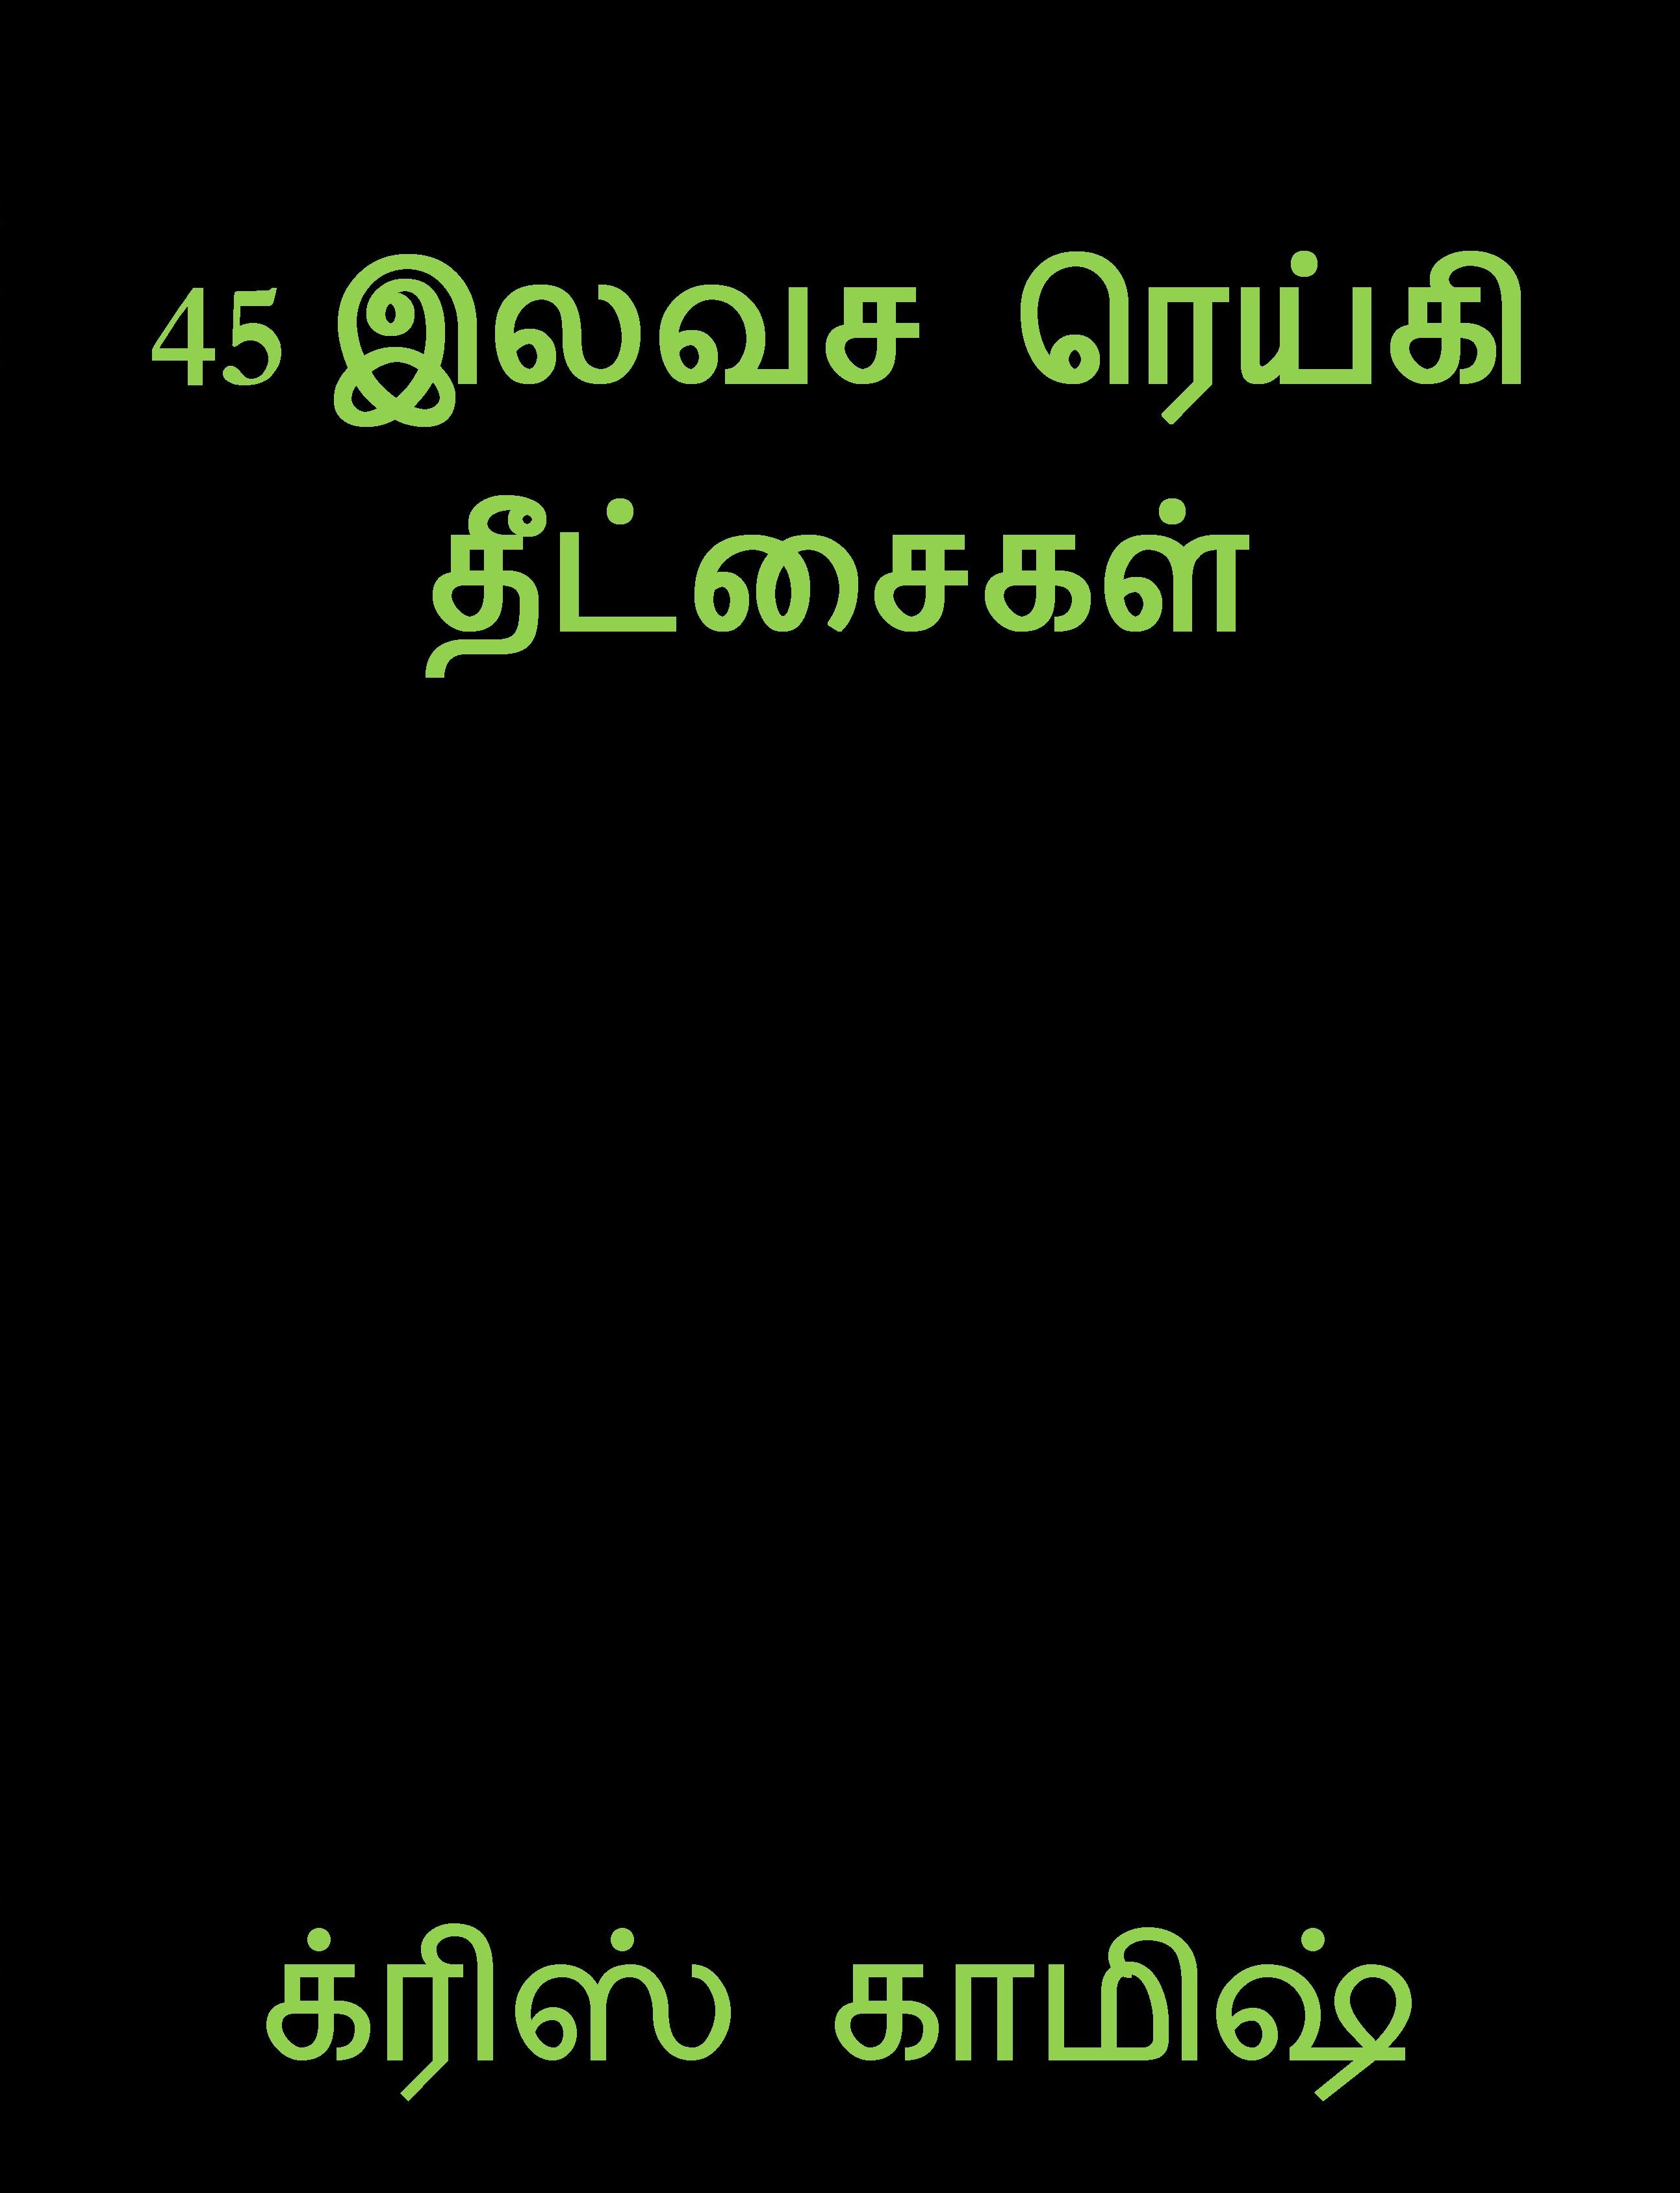 smashwords 45 free reiki attunements tamil a book by chris comish